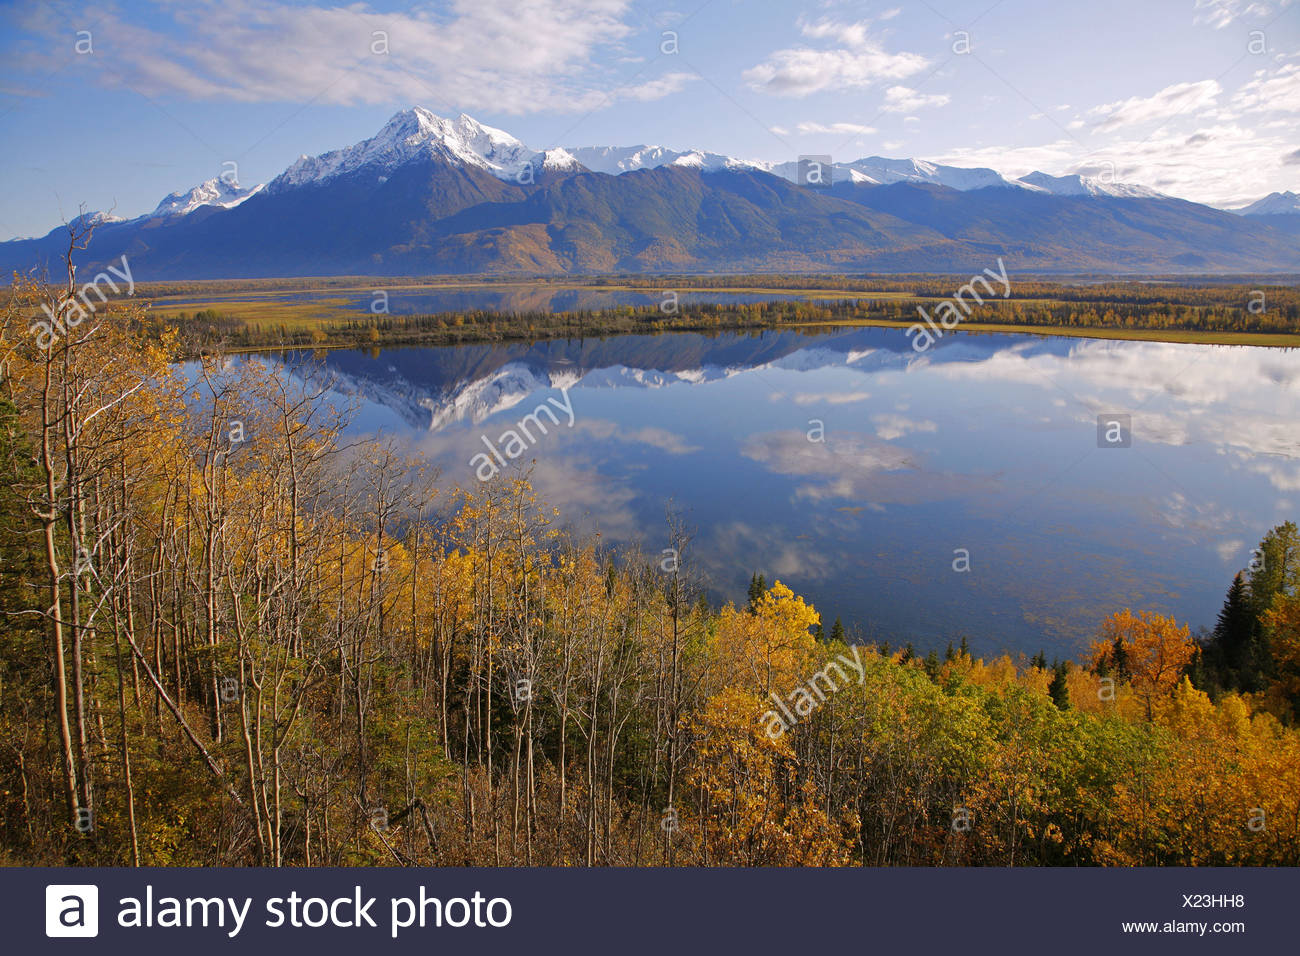 Pioneer Peak reflected in Jim Lake, Knik River Valley, SC, Alaska - Stock Image